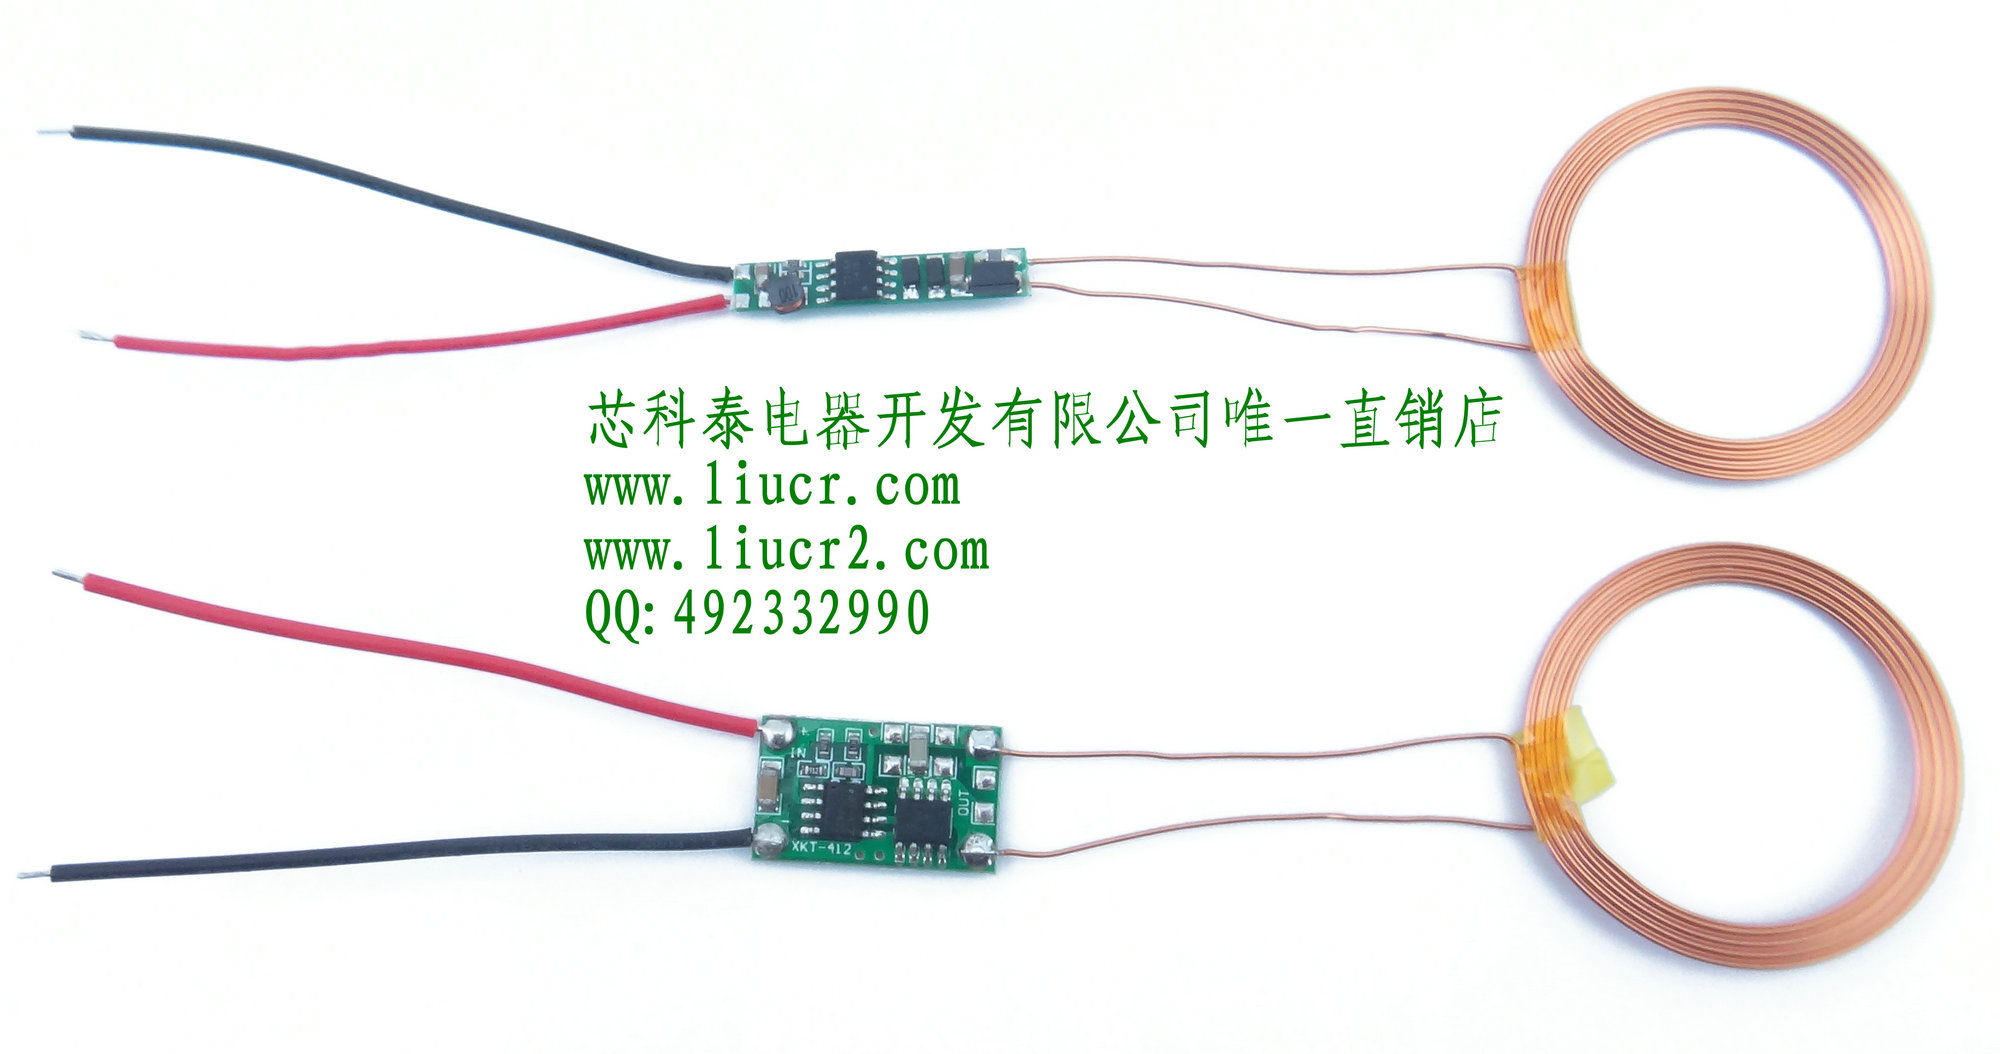 medium resolution of 38mm single layer high frequency ultra thin coil wireless charging power supply module circuit diagram xkt 412 program